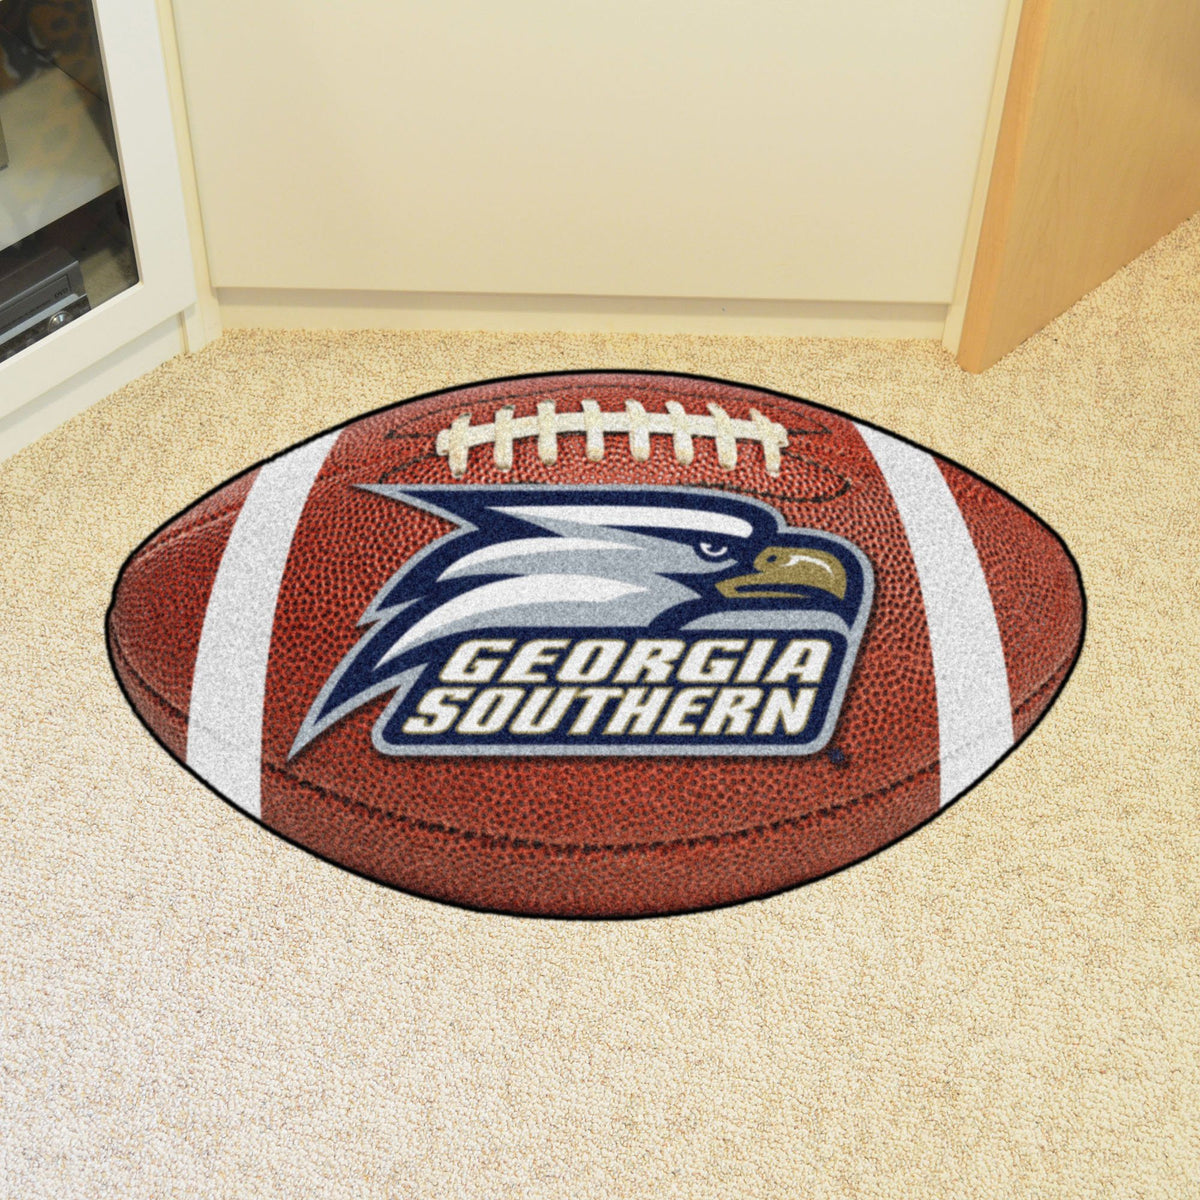 Collegiate - Football Mat: A - K Collegiate Mats, Rectangular Mats, Football Mat, Collegiate, Home Fan Mats Georgia Southern